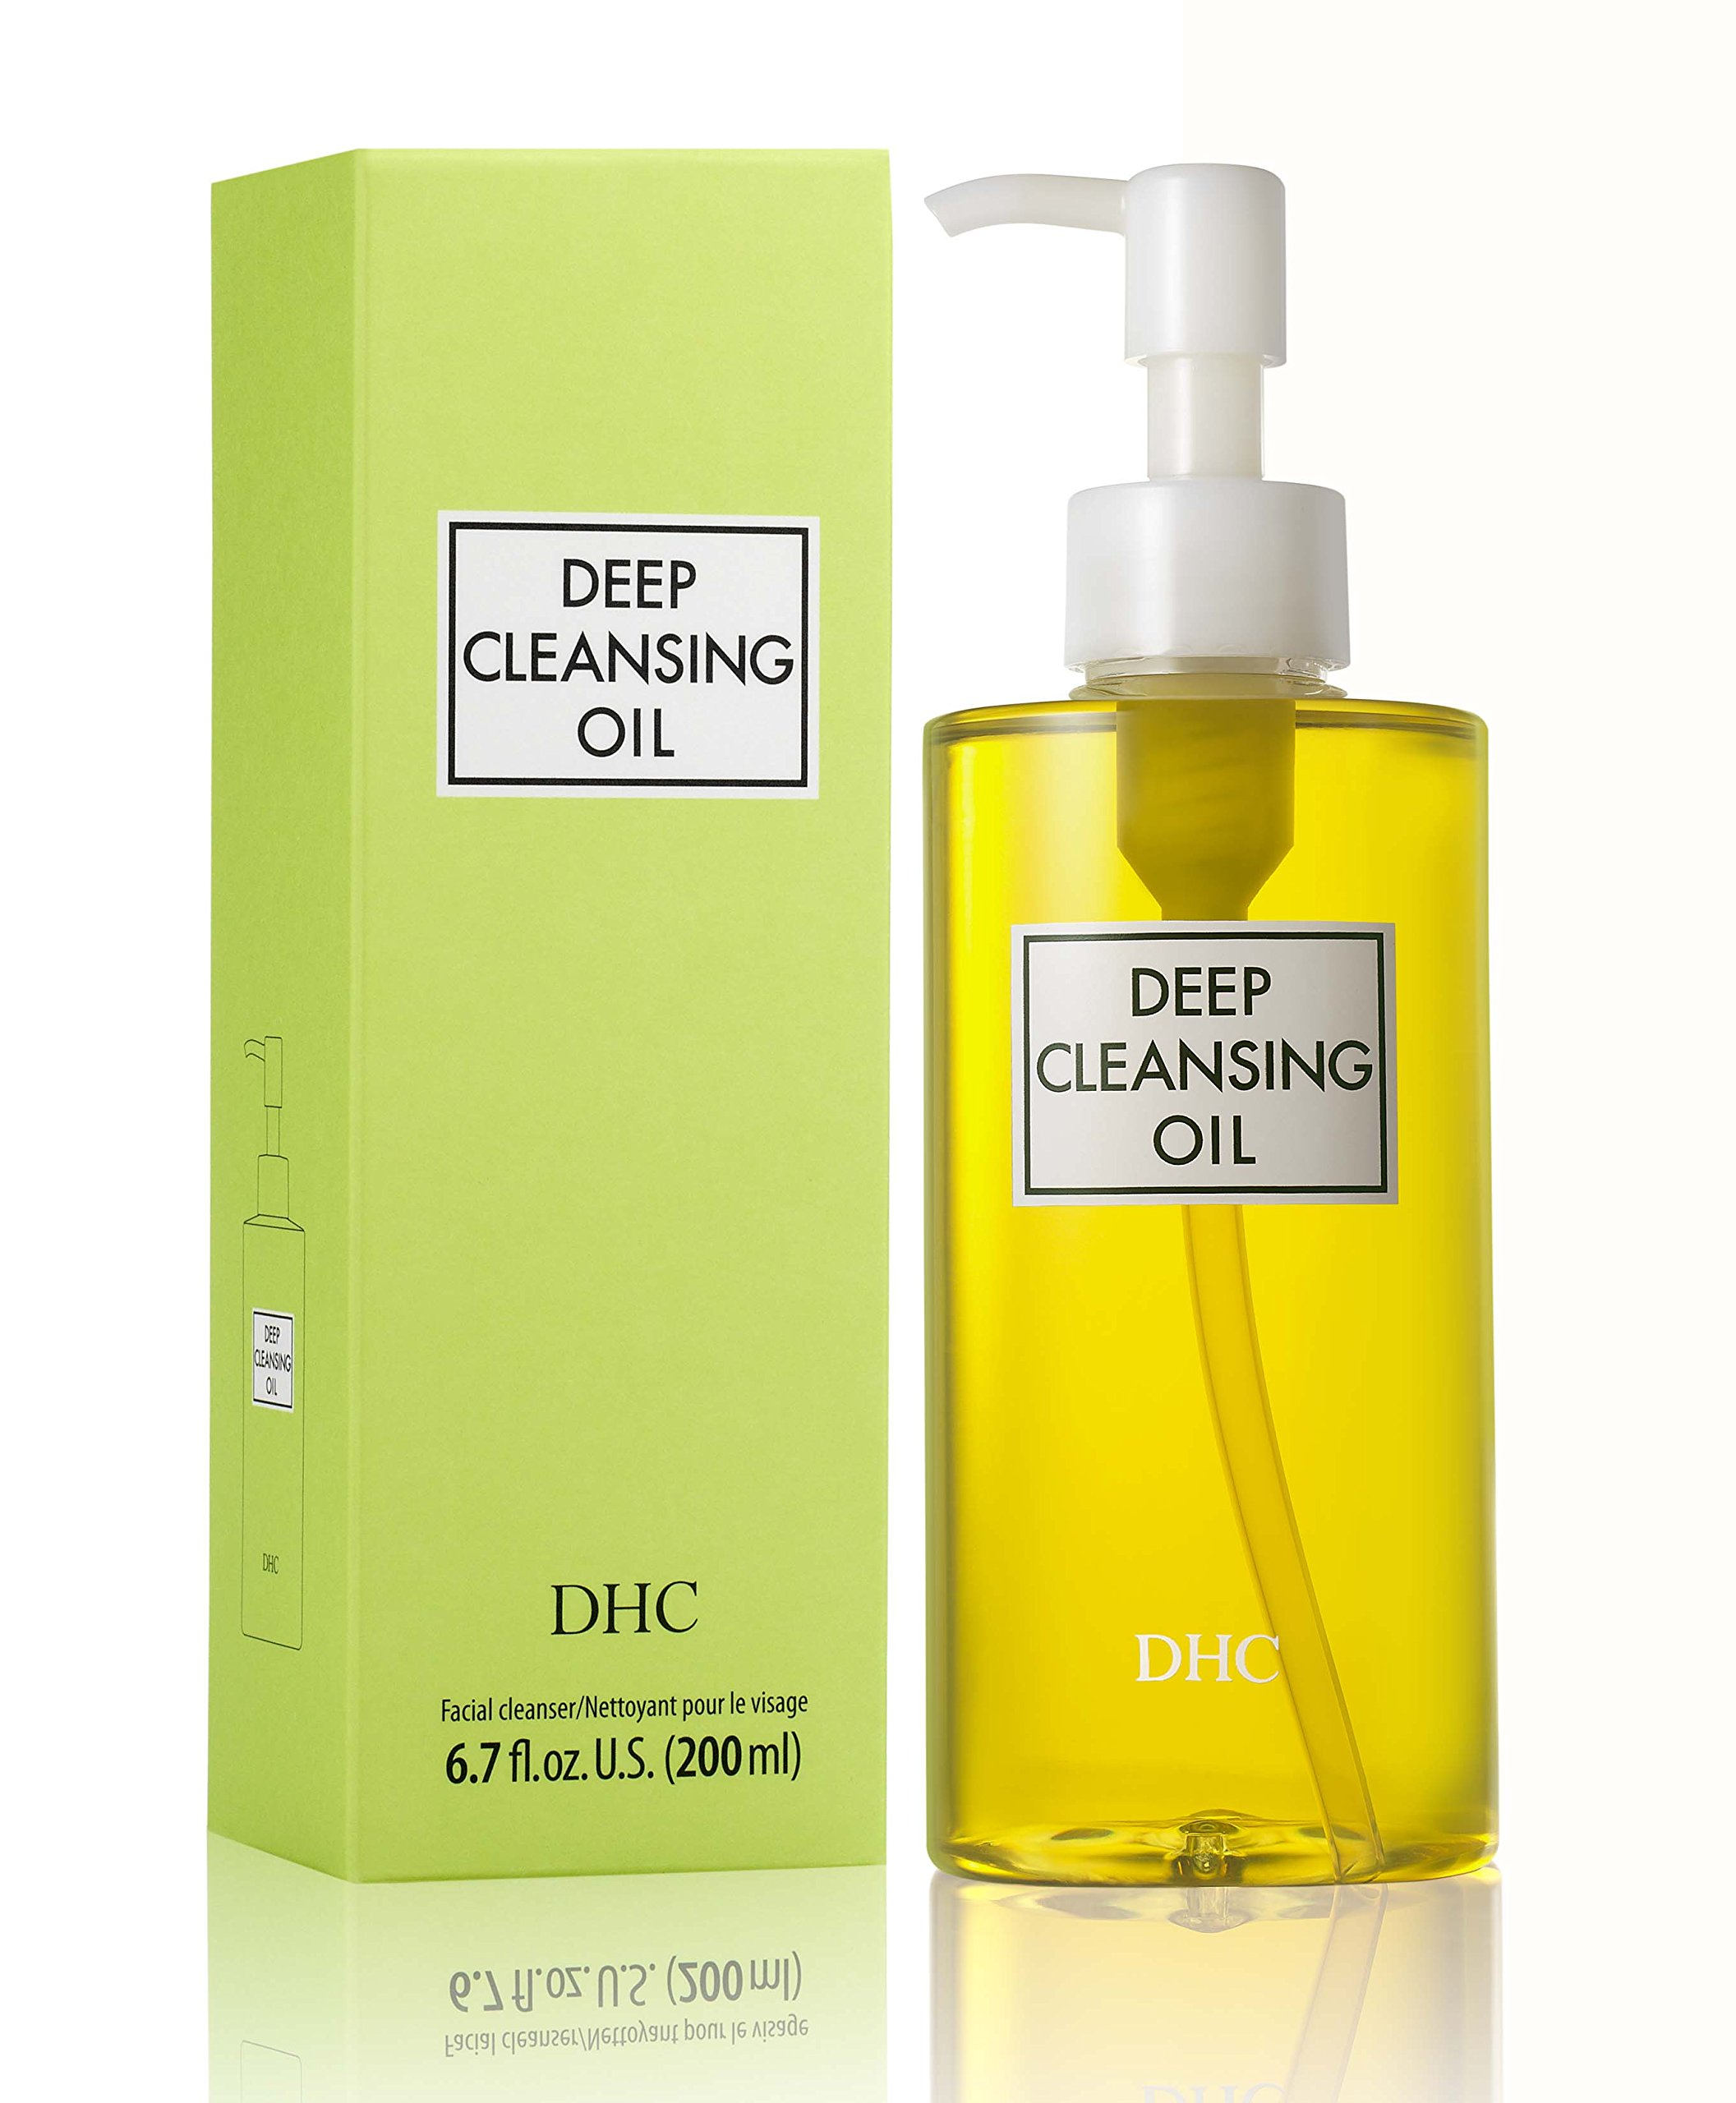 DHC Deep Cleansing Oil, 6.7 fl. oz. by DHC